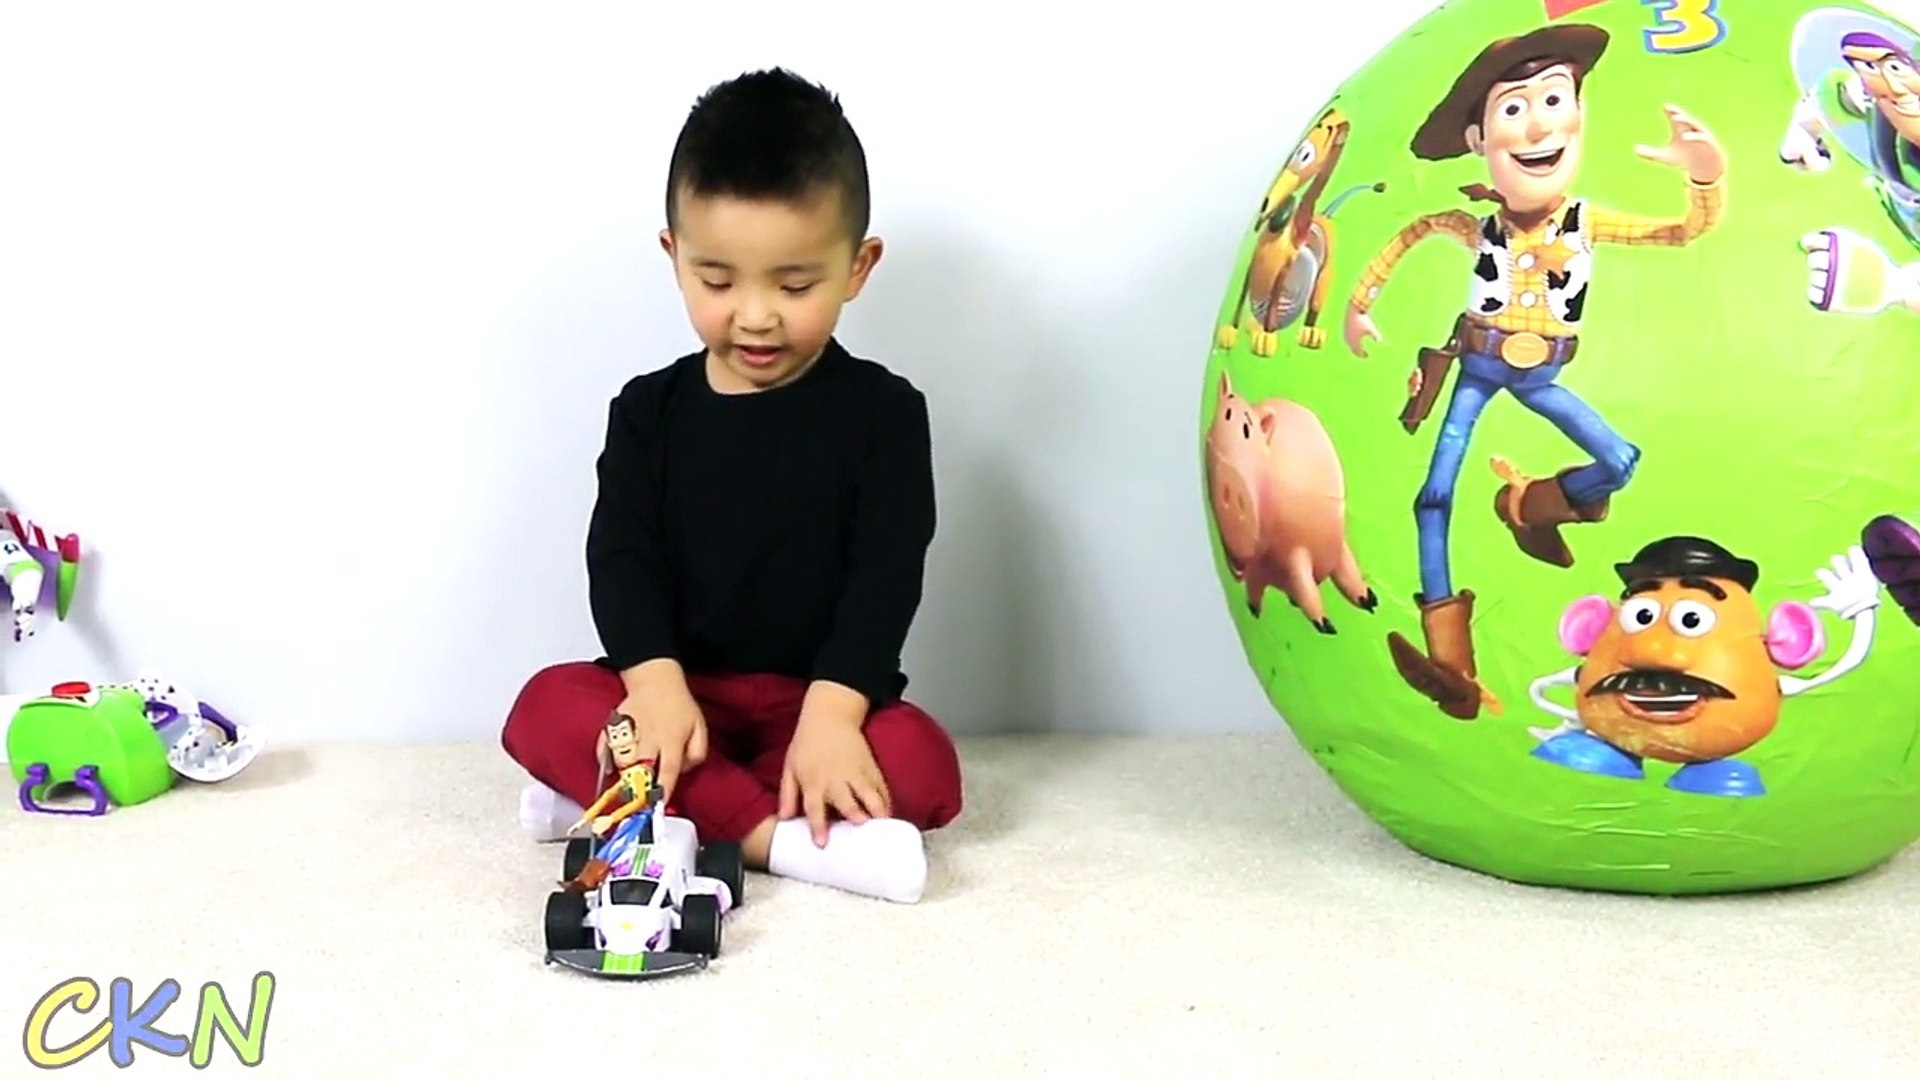 Disney Toy Story Super Giant Surprise Egg With Woody Buzz Lightyear Talking Toys Cars Ckn Toys